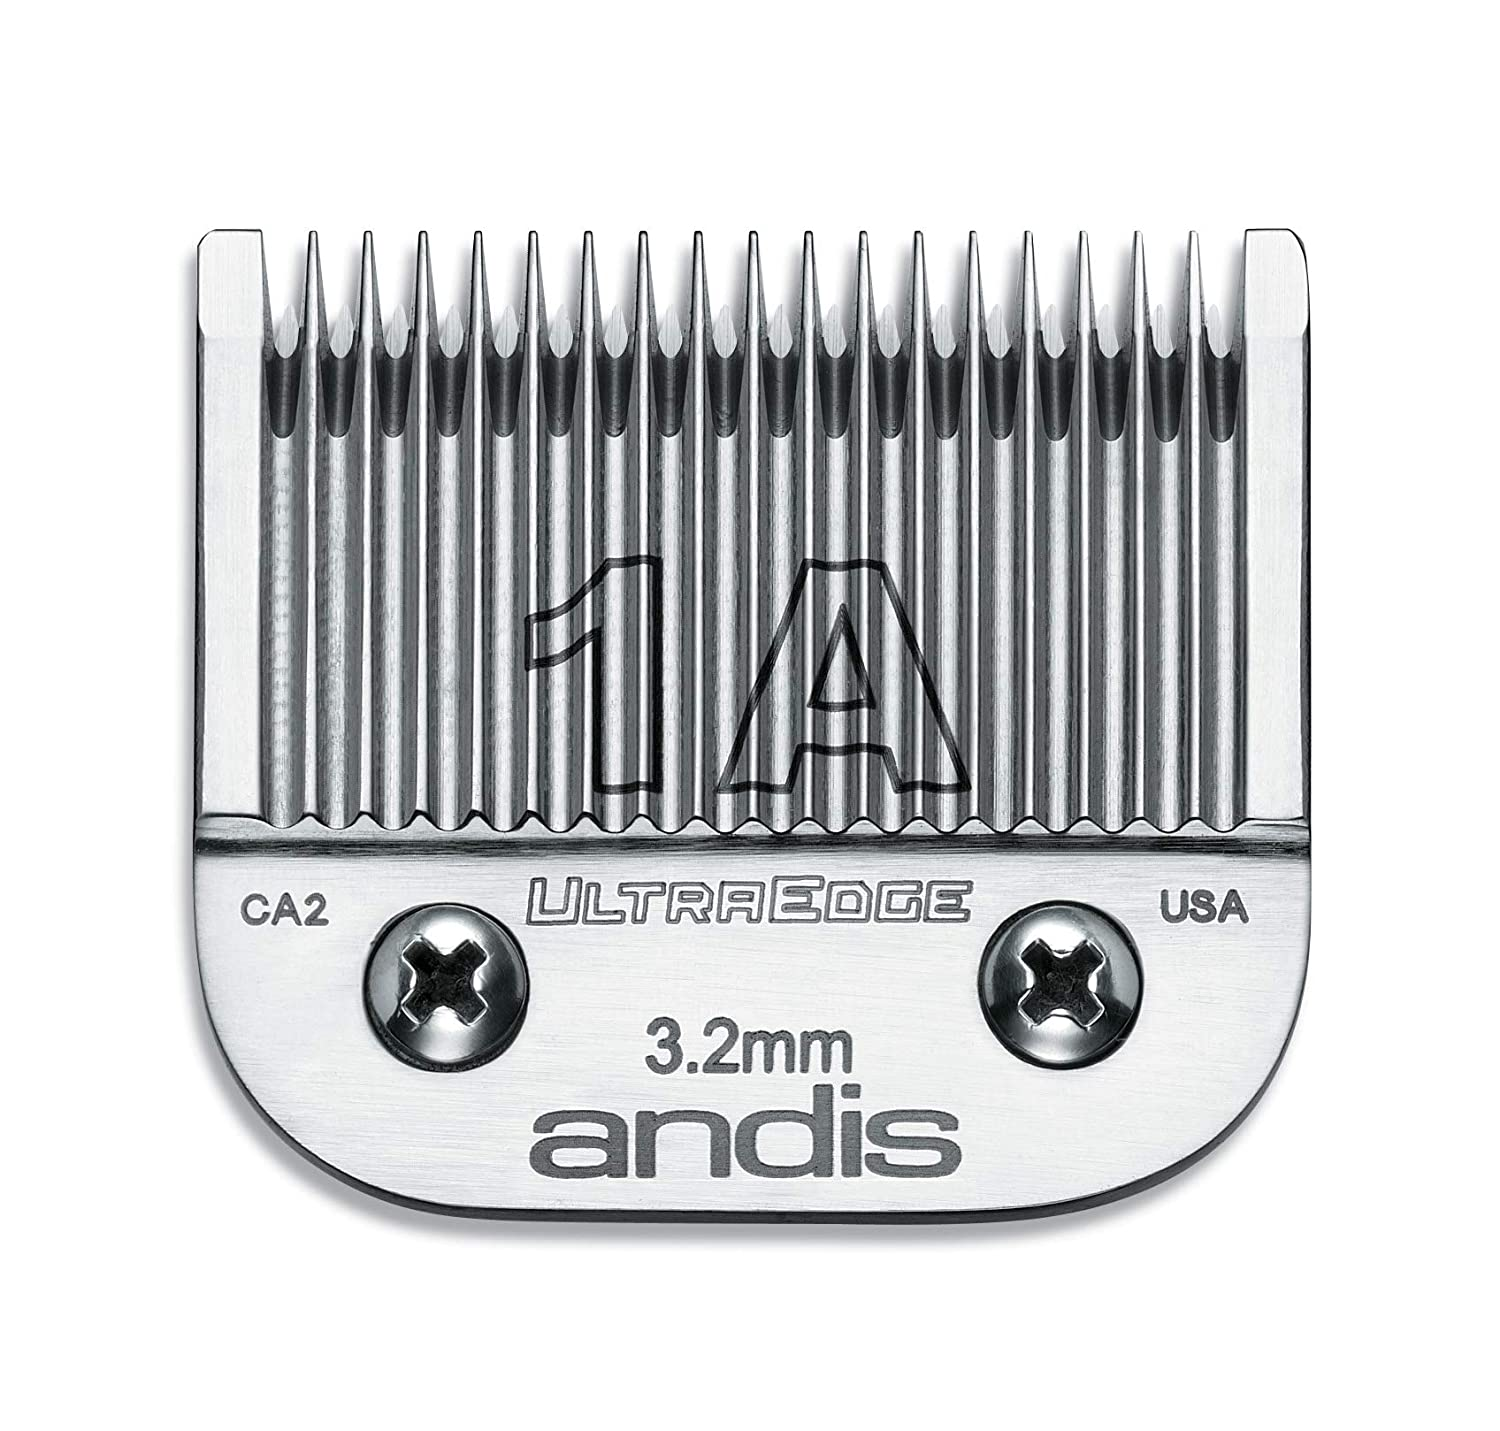 Andis 64205 UltraEdge Carbon-Infused Steel Clipper Blade, Size 1A, 1/8-Inch Cut Length